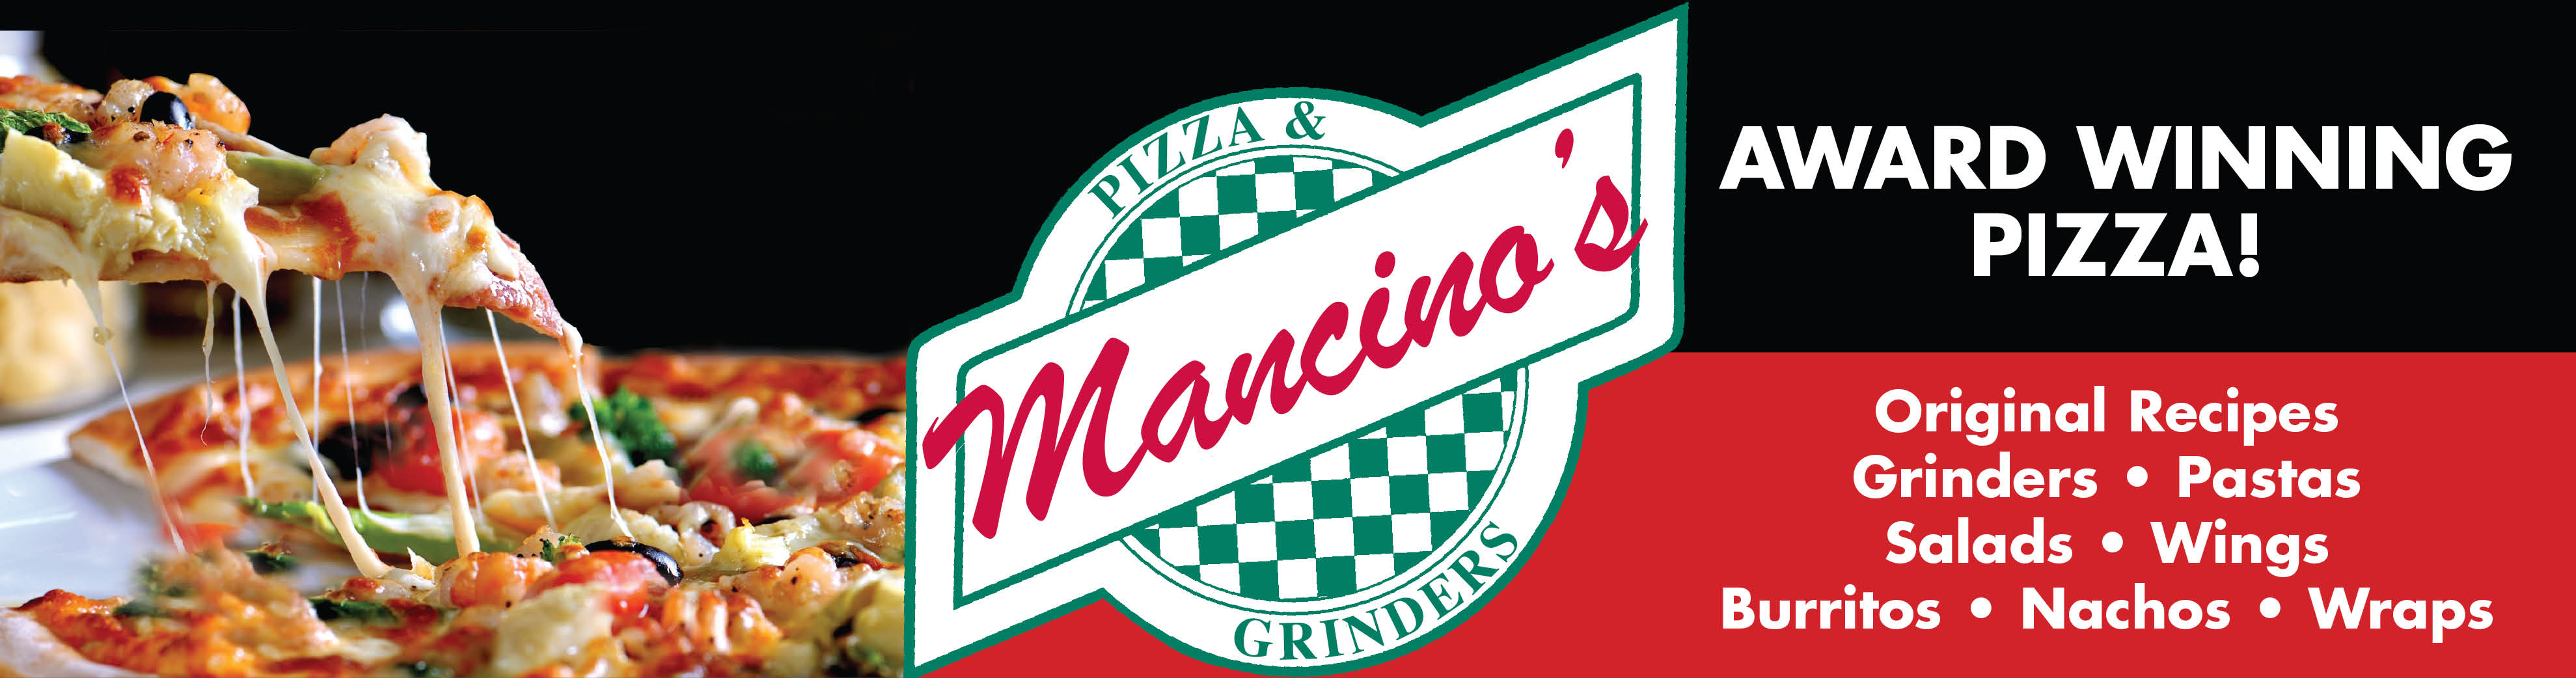 Banner logo for Mancino's Pizza and Grinders of Lansing, Il.